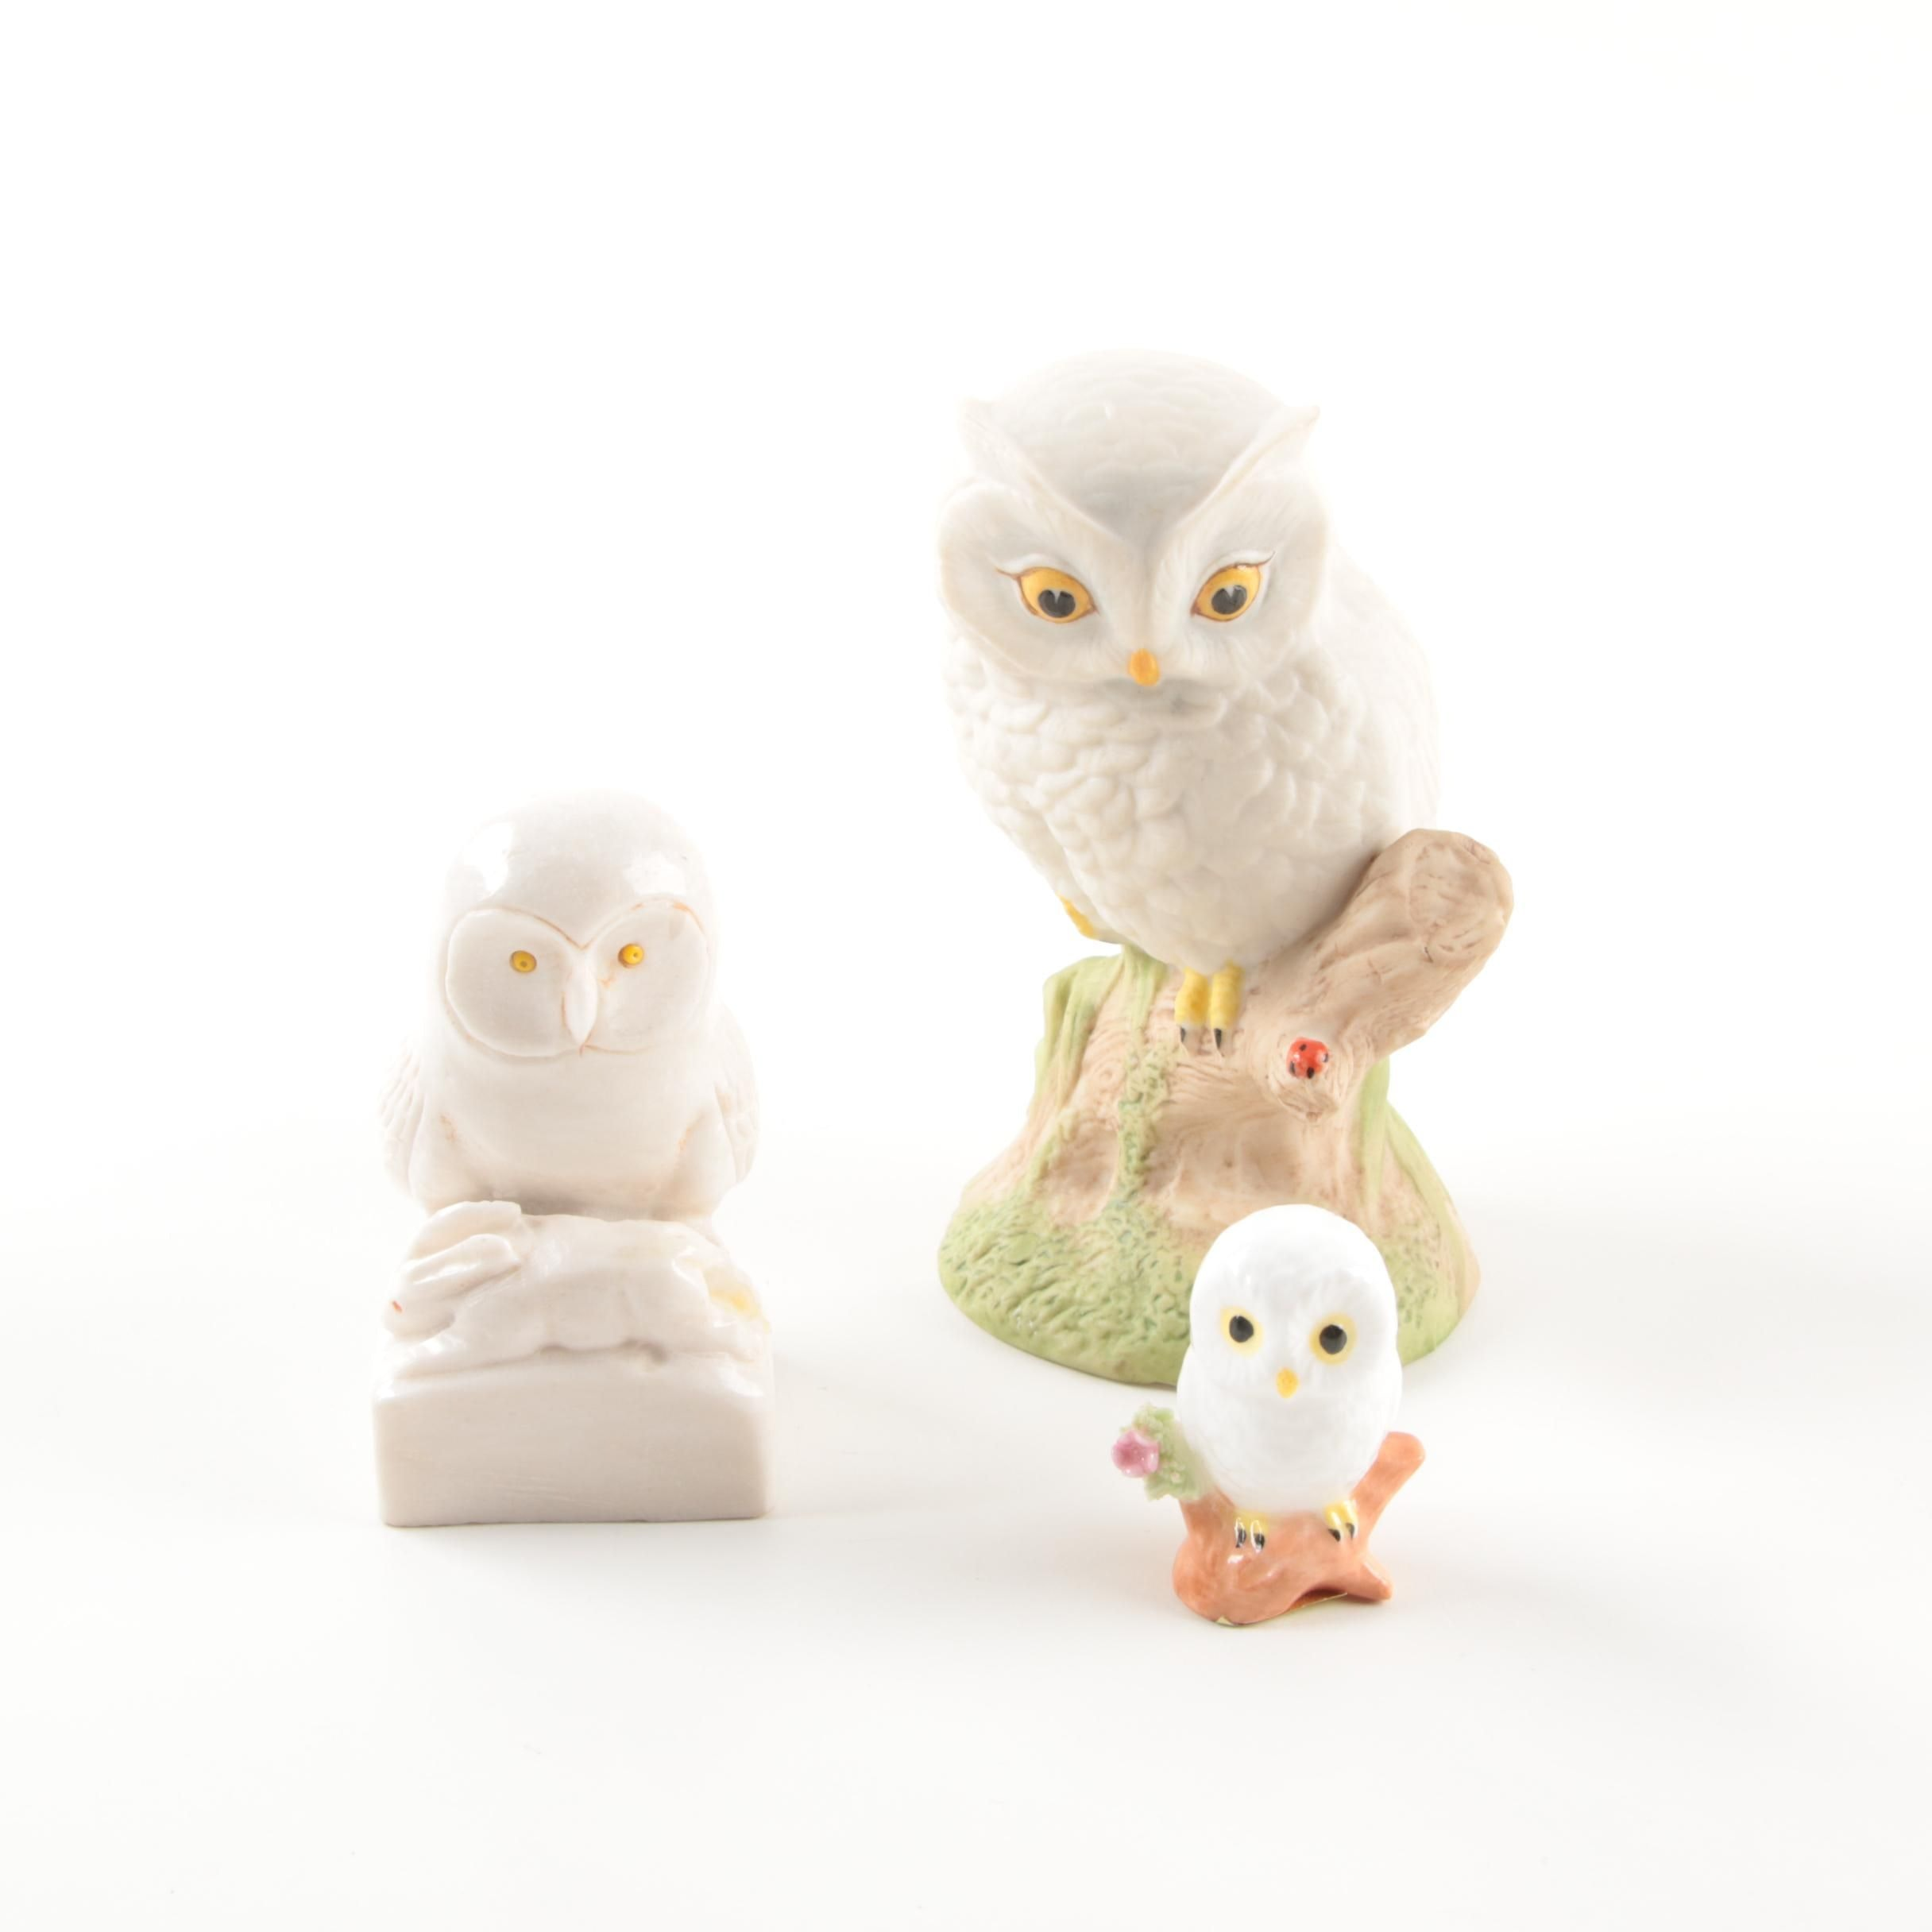 Owl Figurines featuring Carved Alabaster and Porcelain by Aynsley